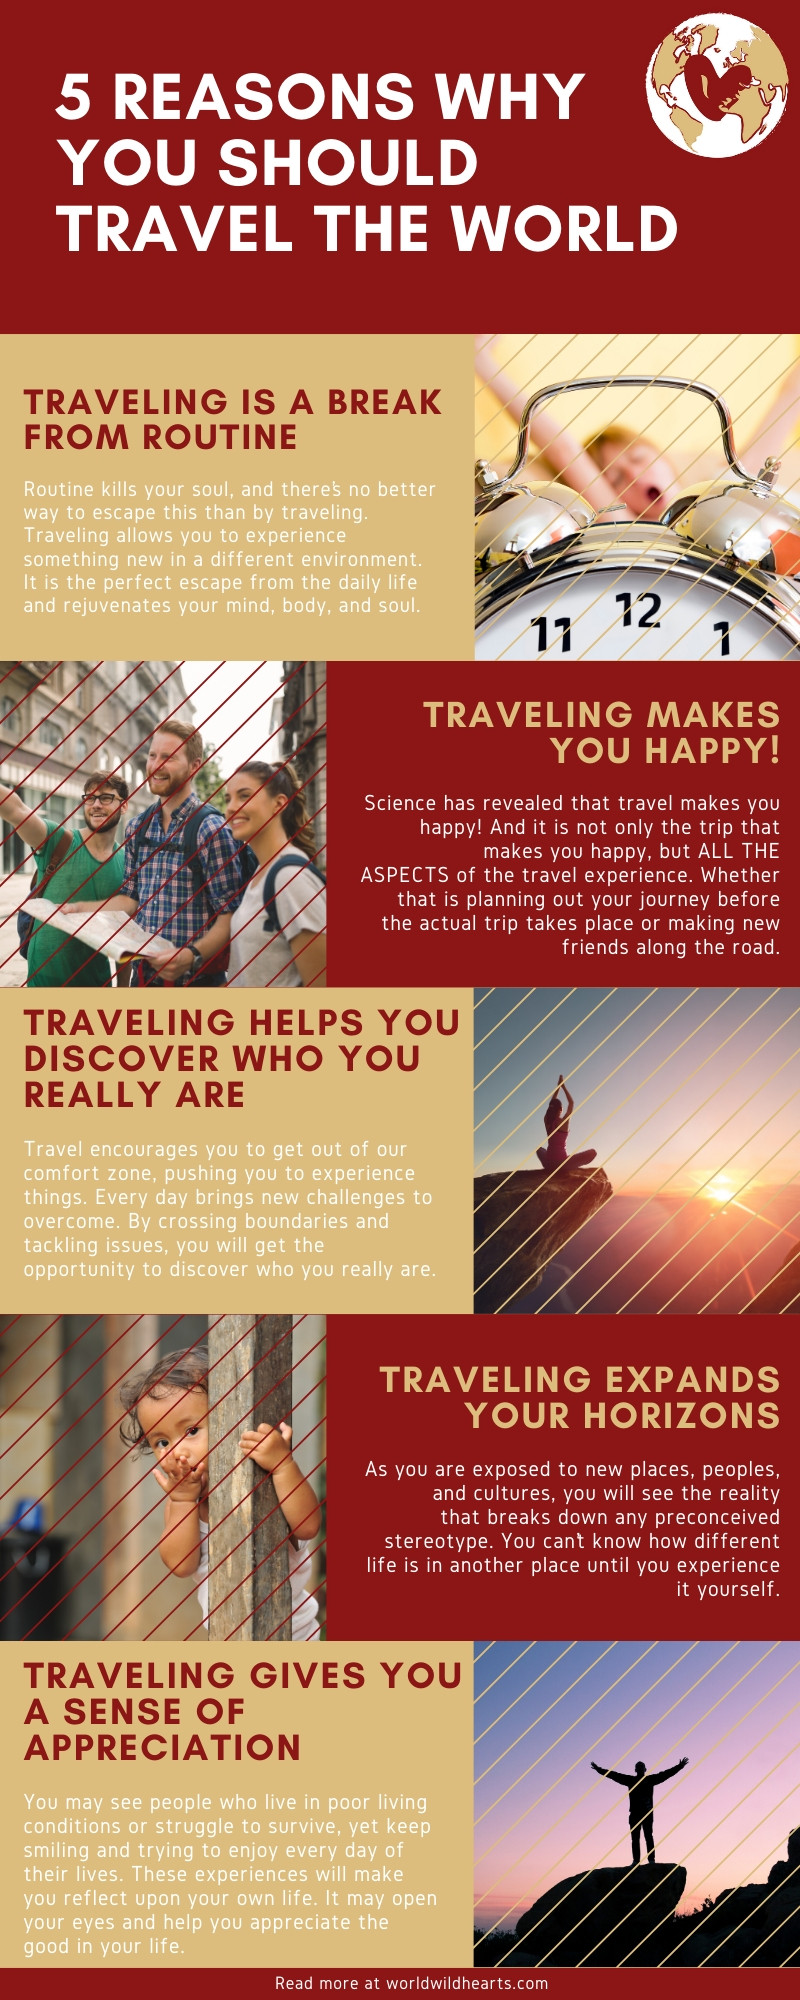 5 Reasons why you should travel the world infographic